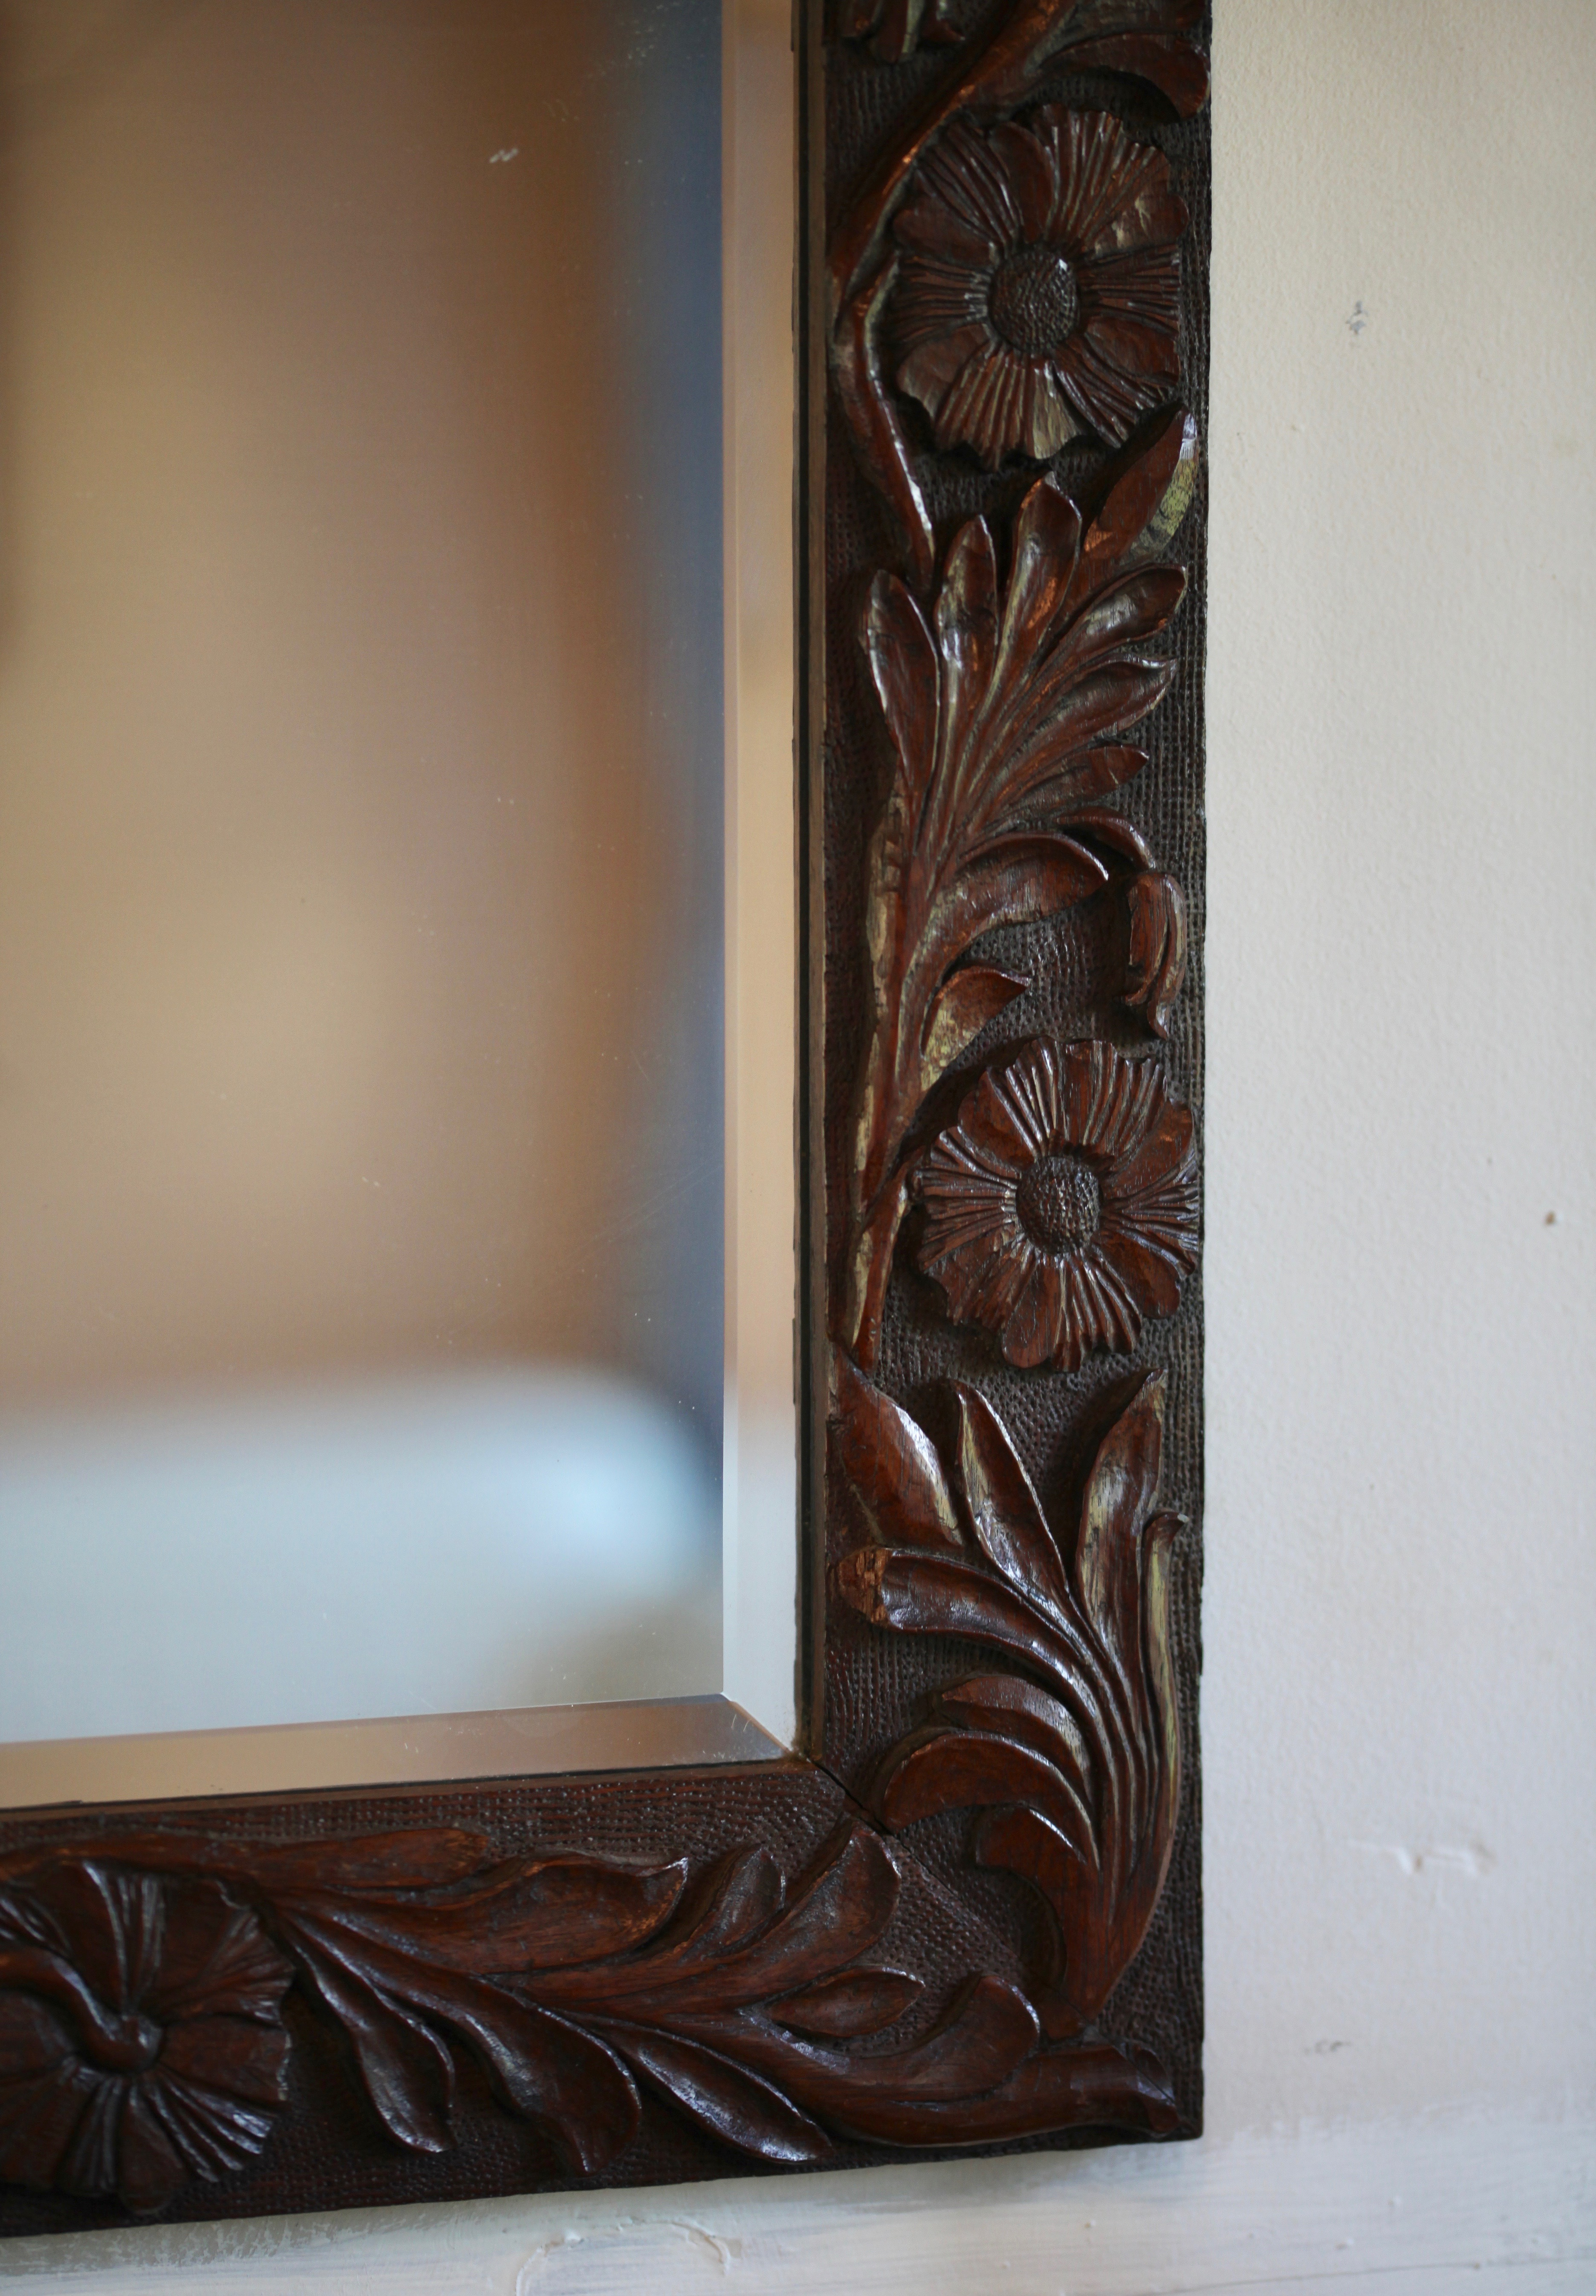 Carving on mirror 3